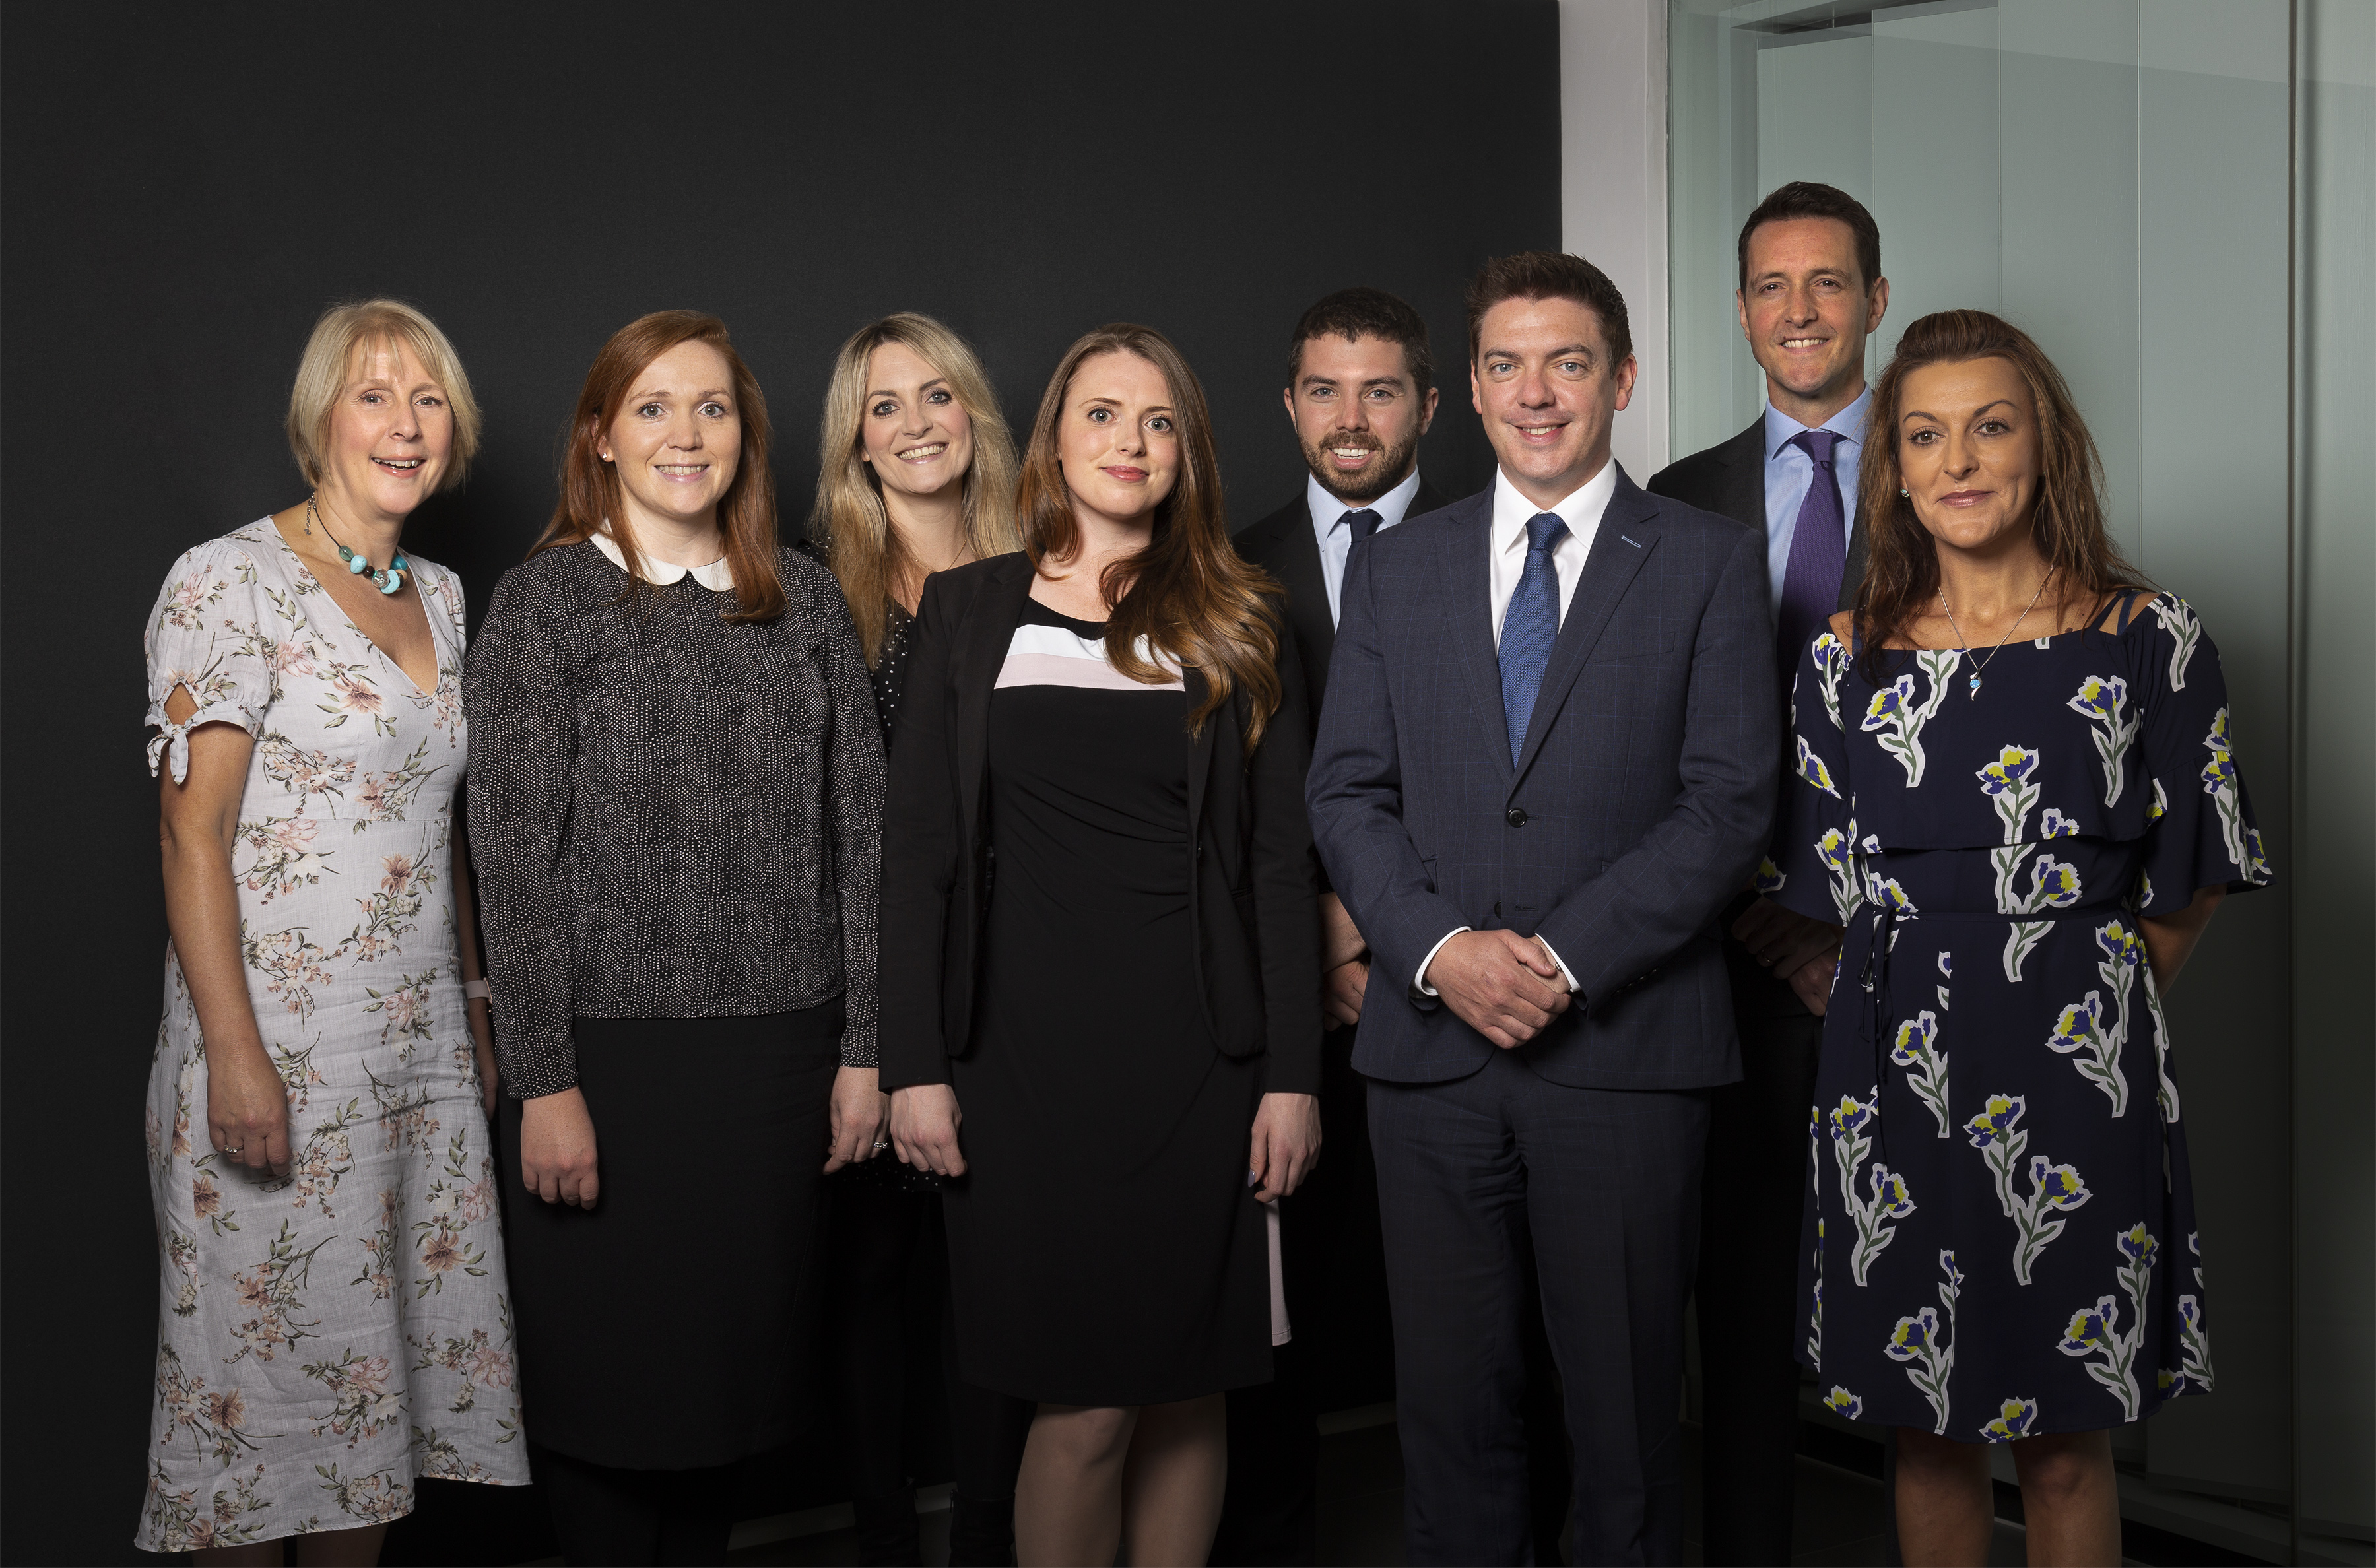 Expertise recognised at Bedell Cristin with promotions